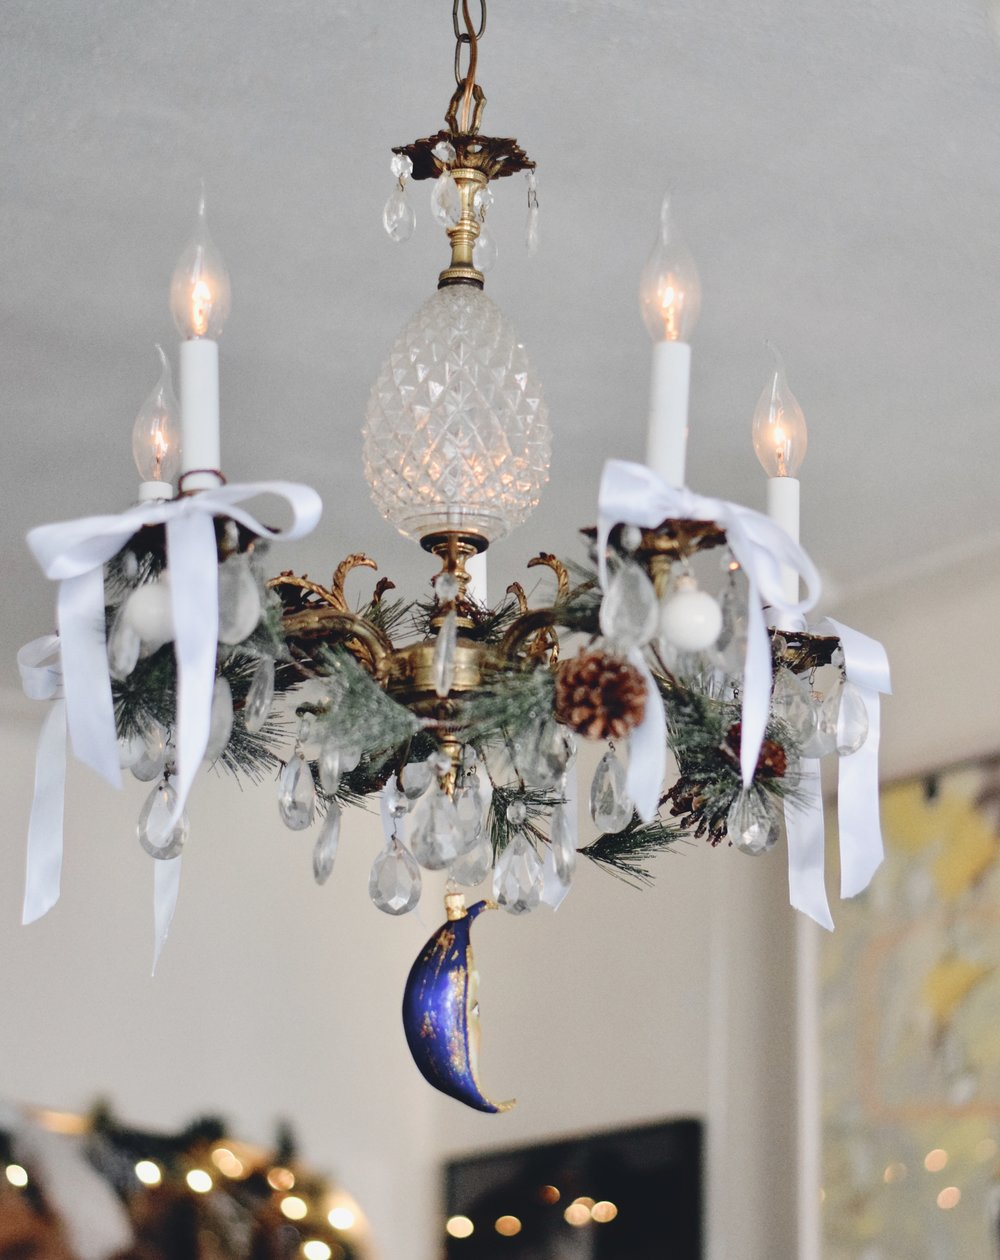 chandelier with gold blue moon ornament